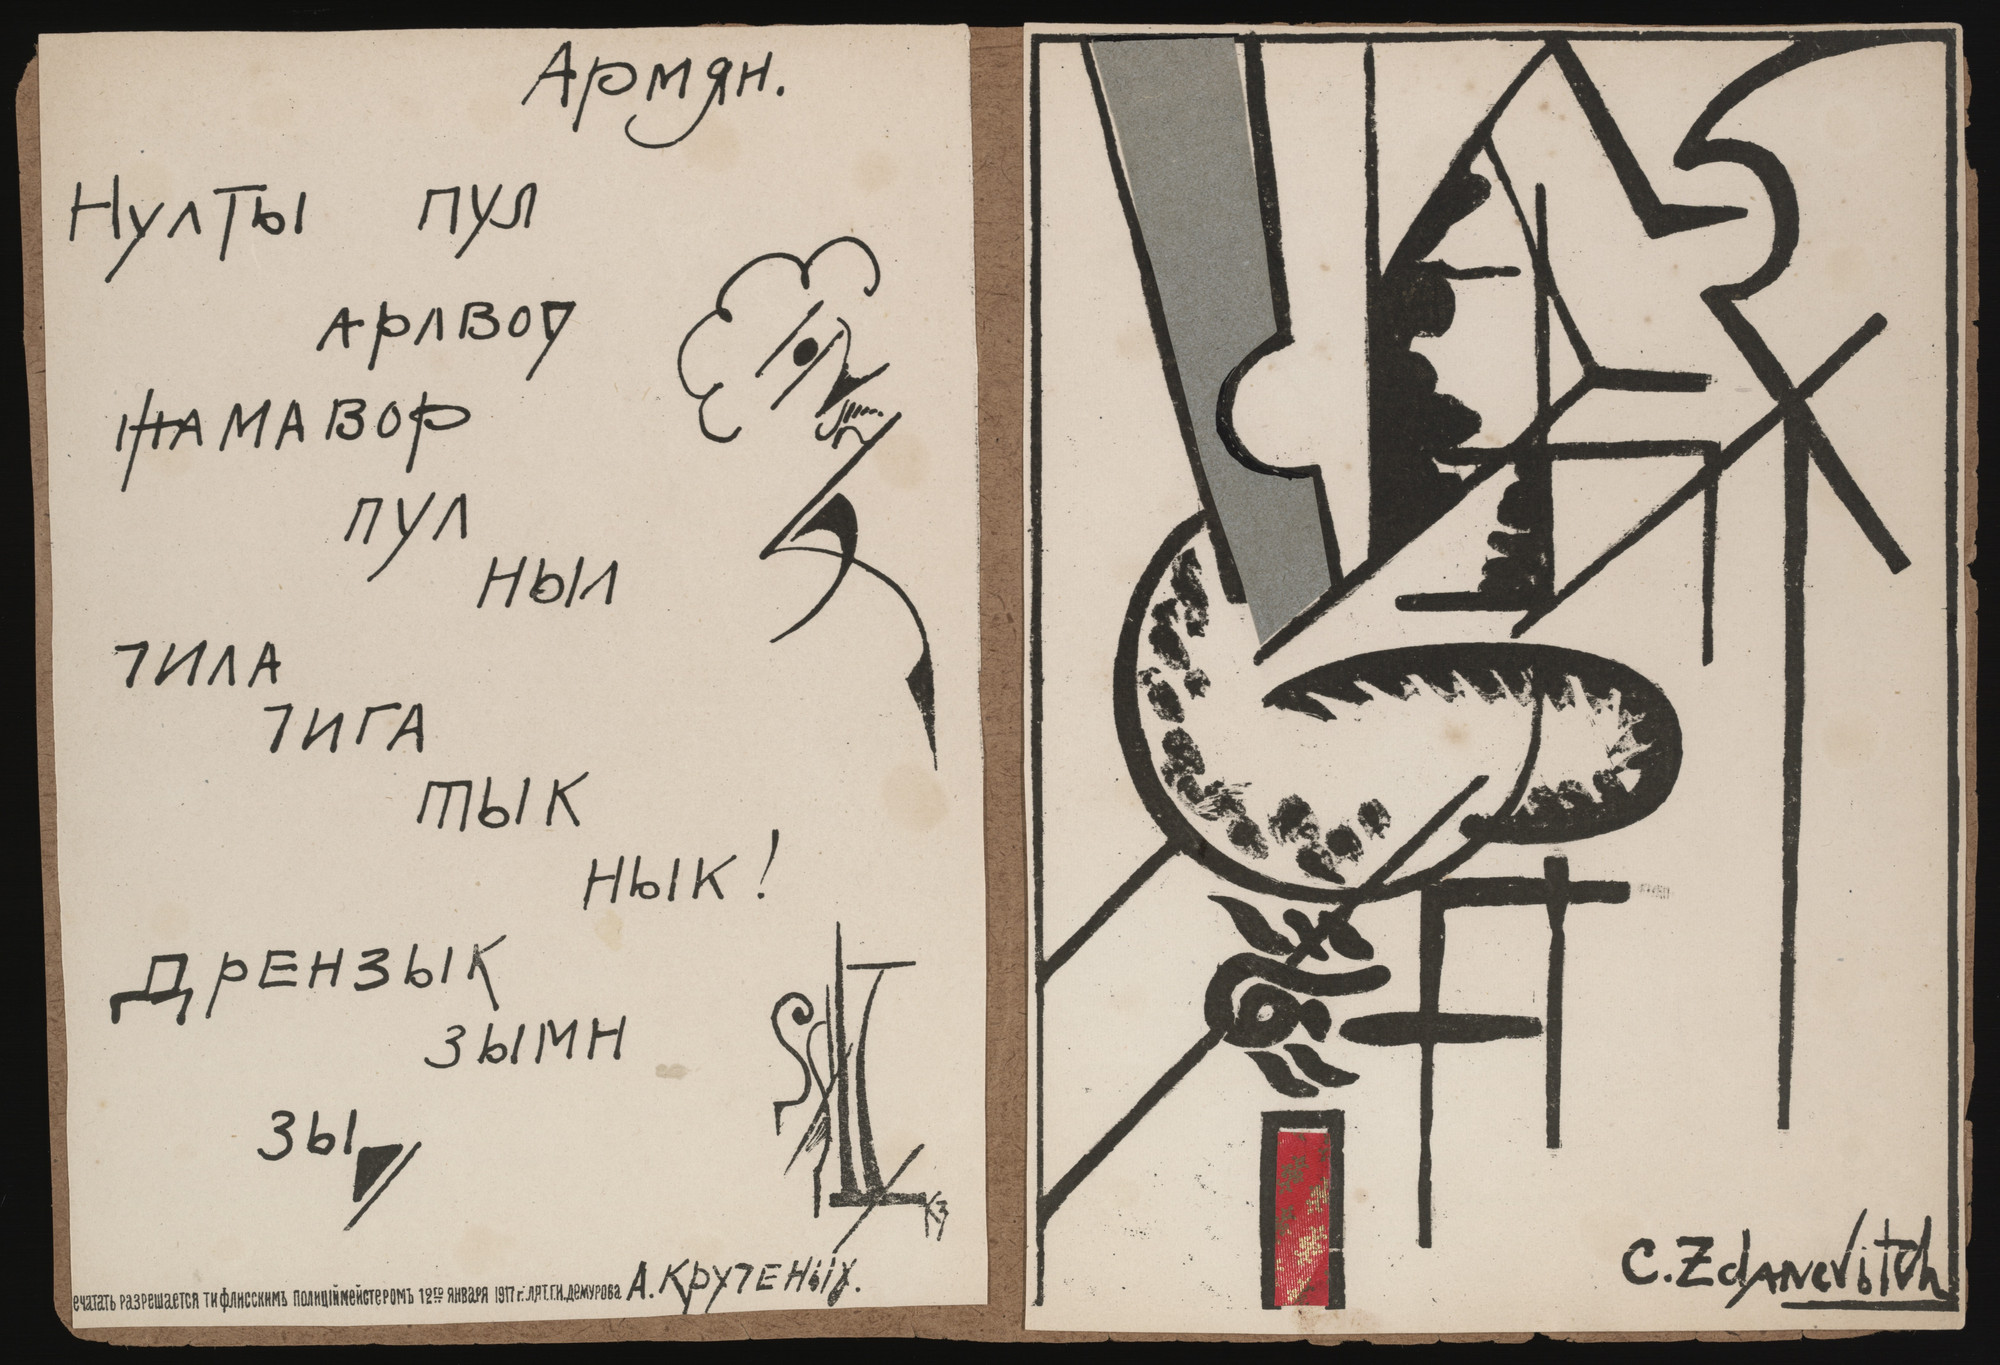 Various Artists, Aleksei Kruchenykh, Kirill Zdanevich. Untitled from 1918. 1917